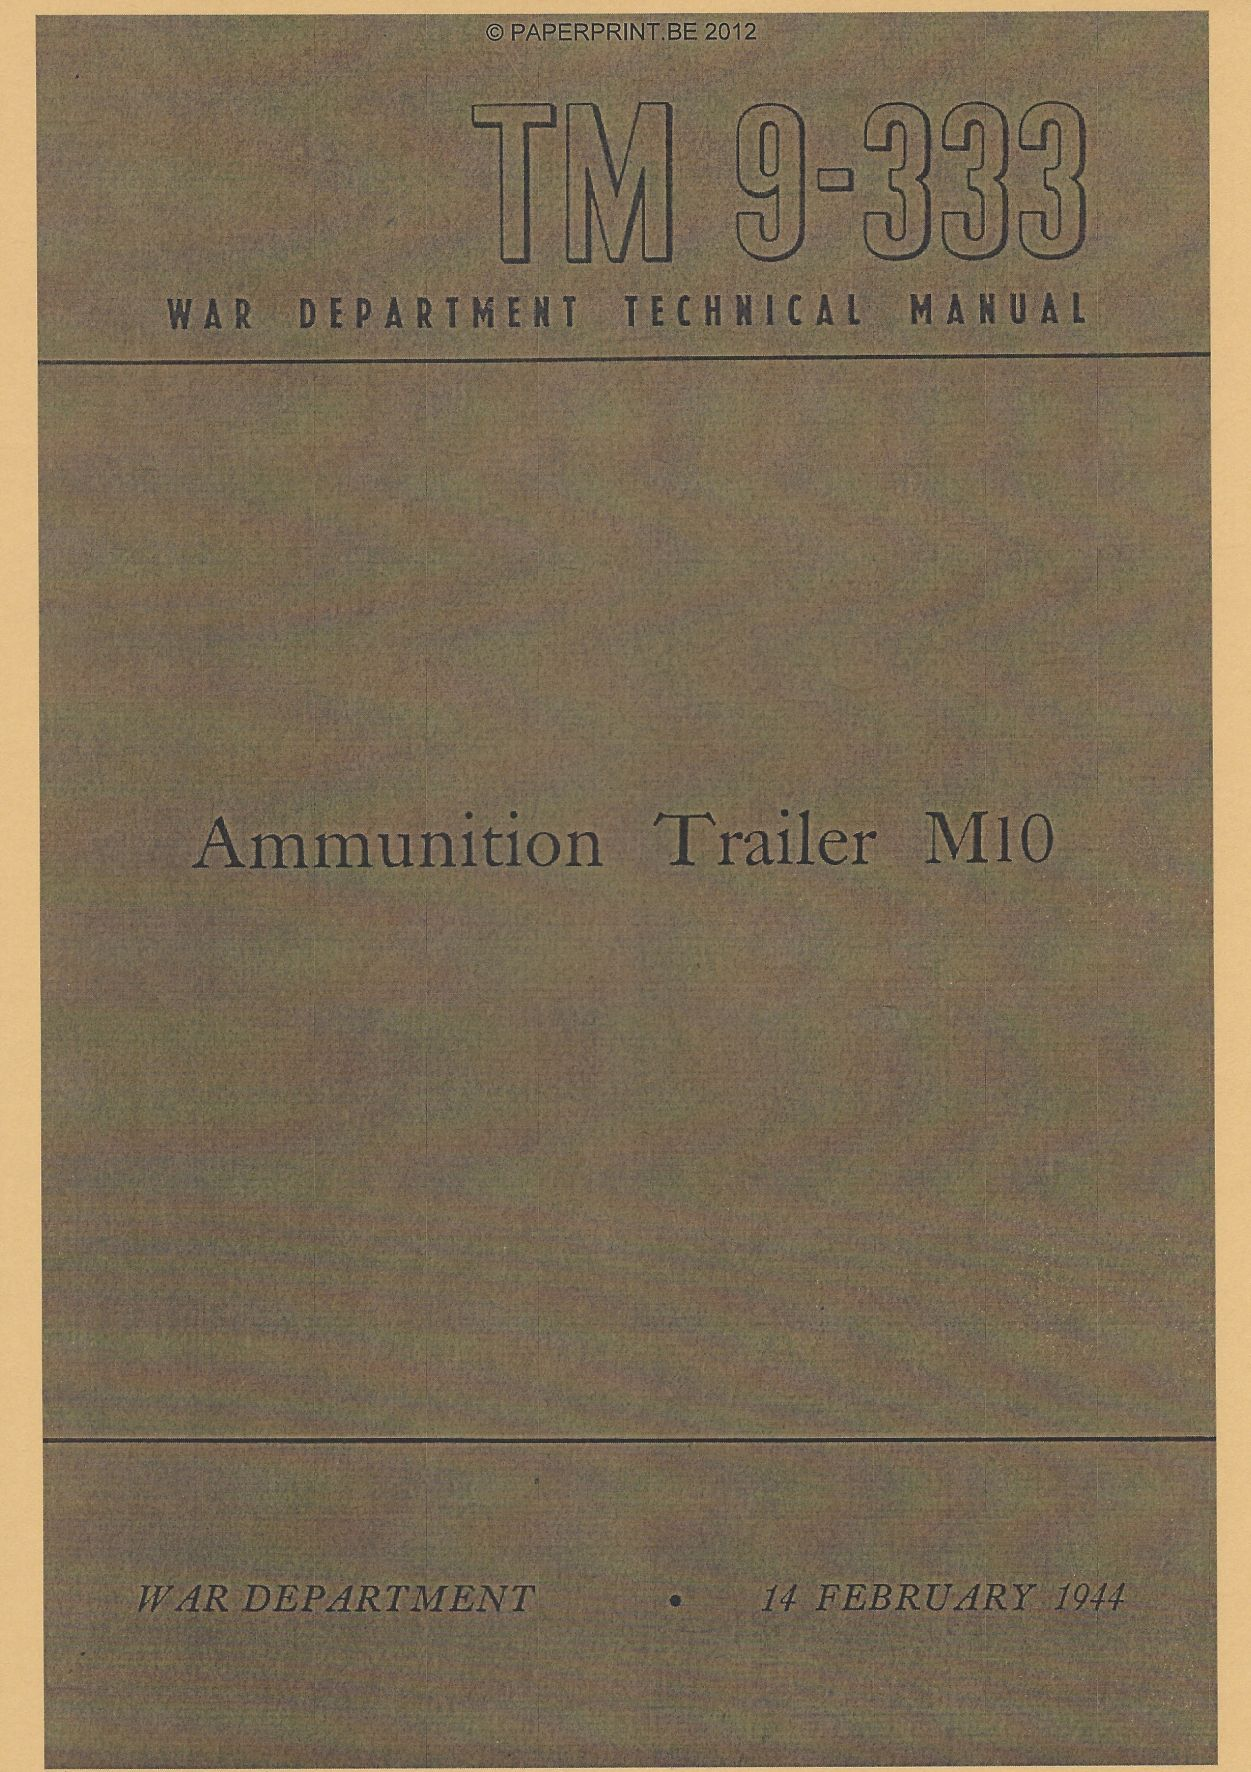 TM 9-333 US M10 AMMUNITION TRAILER